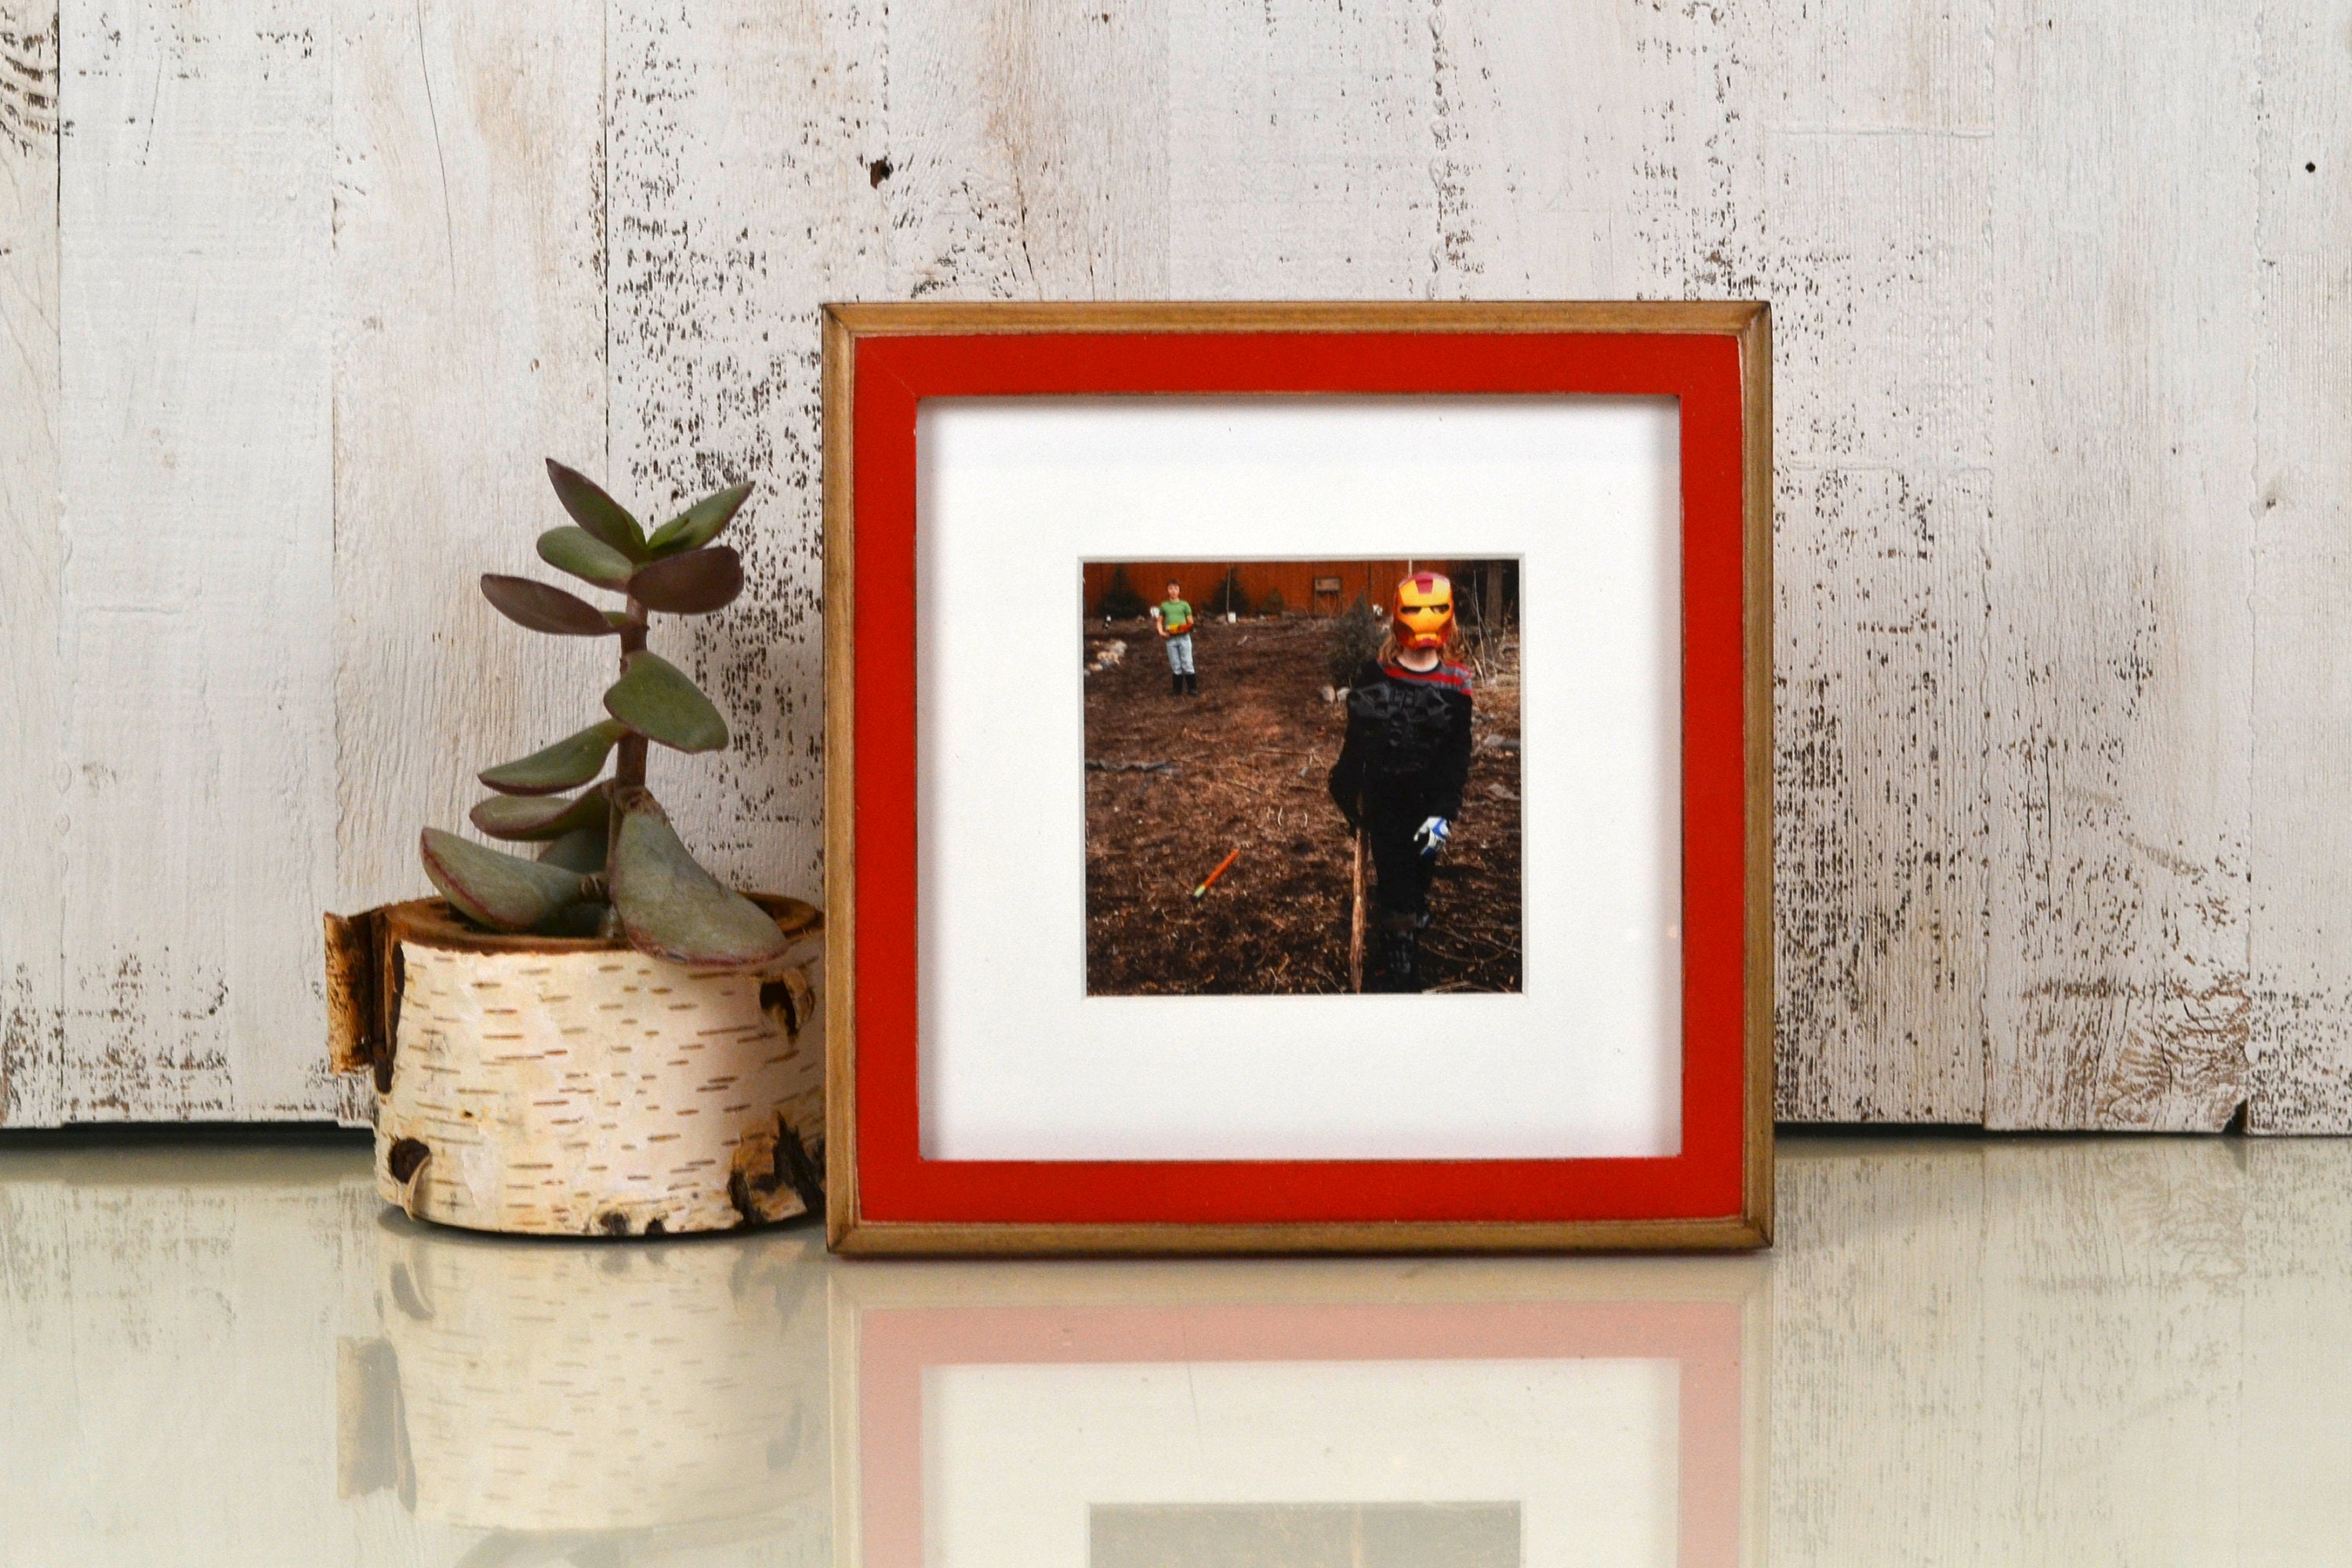 8x8 Square Picture Frame in 1x1 2-Tone Style and Vintage Finish ...